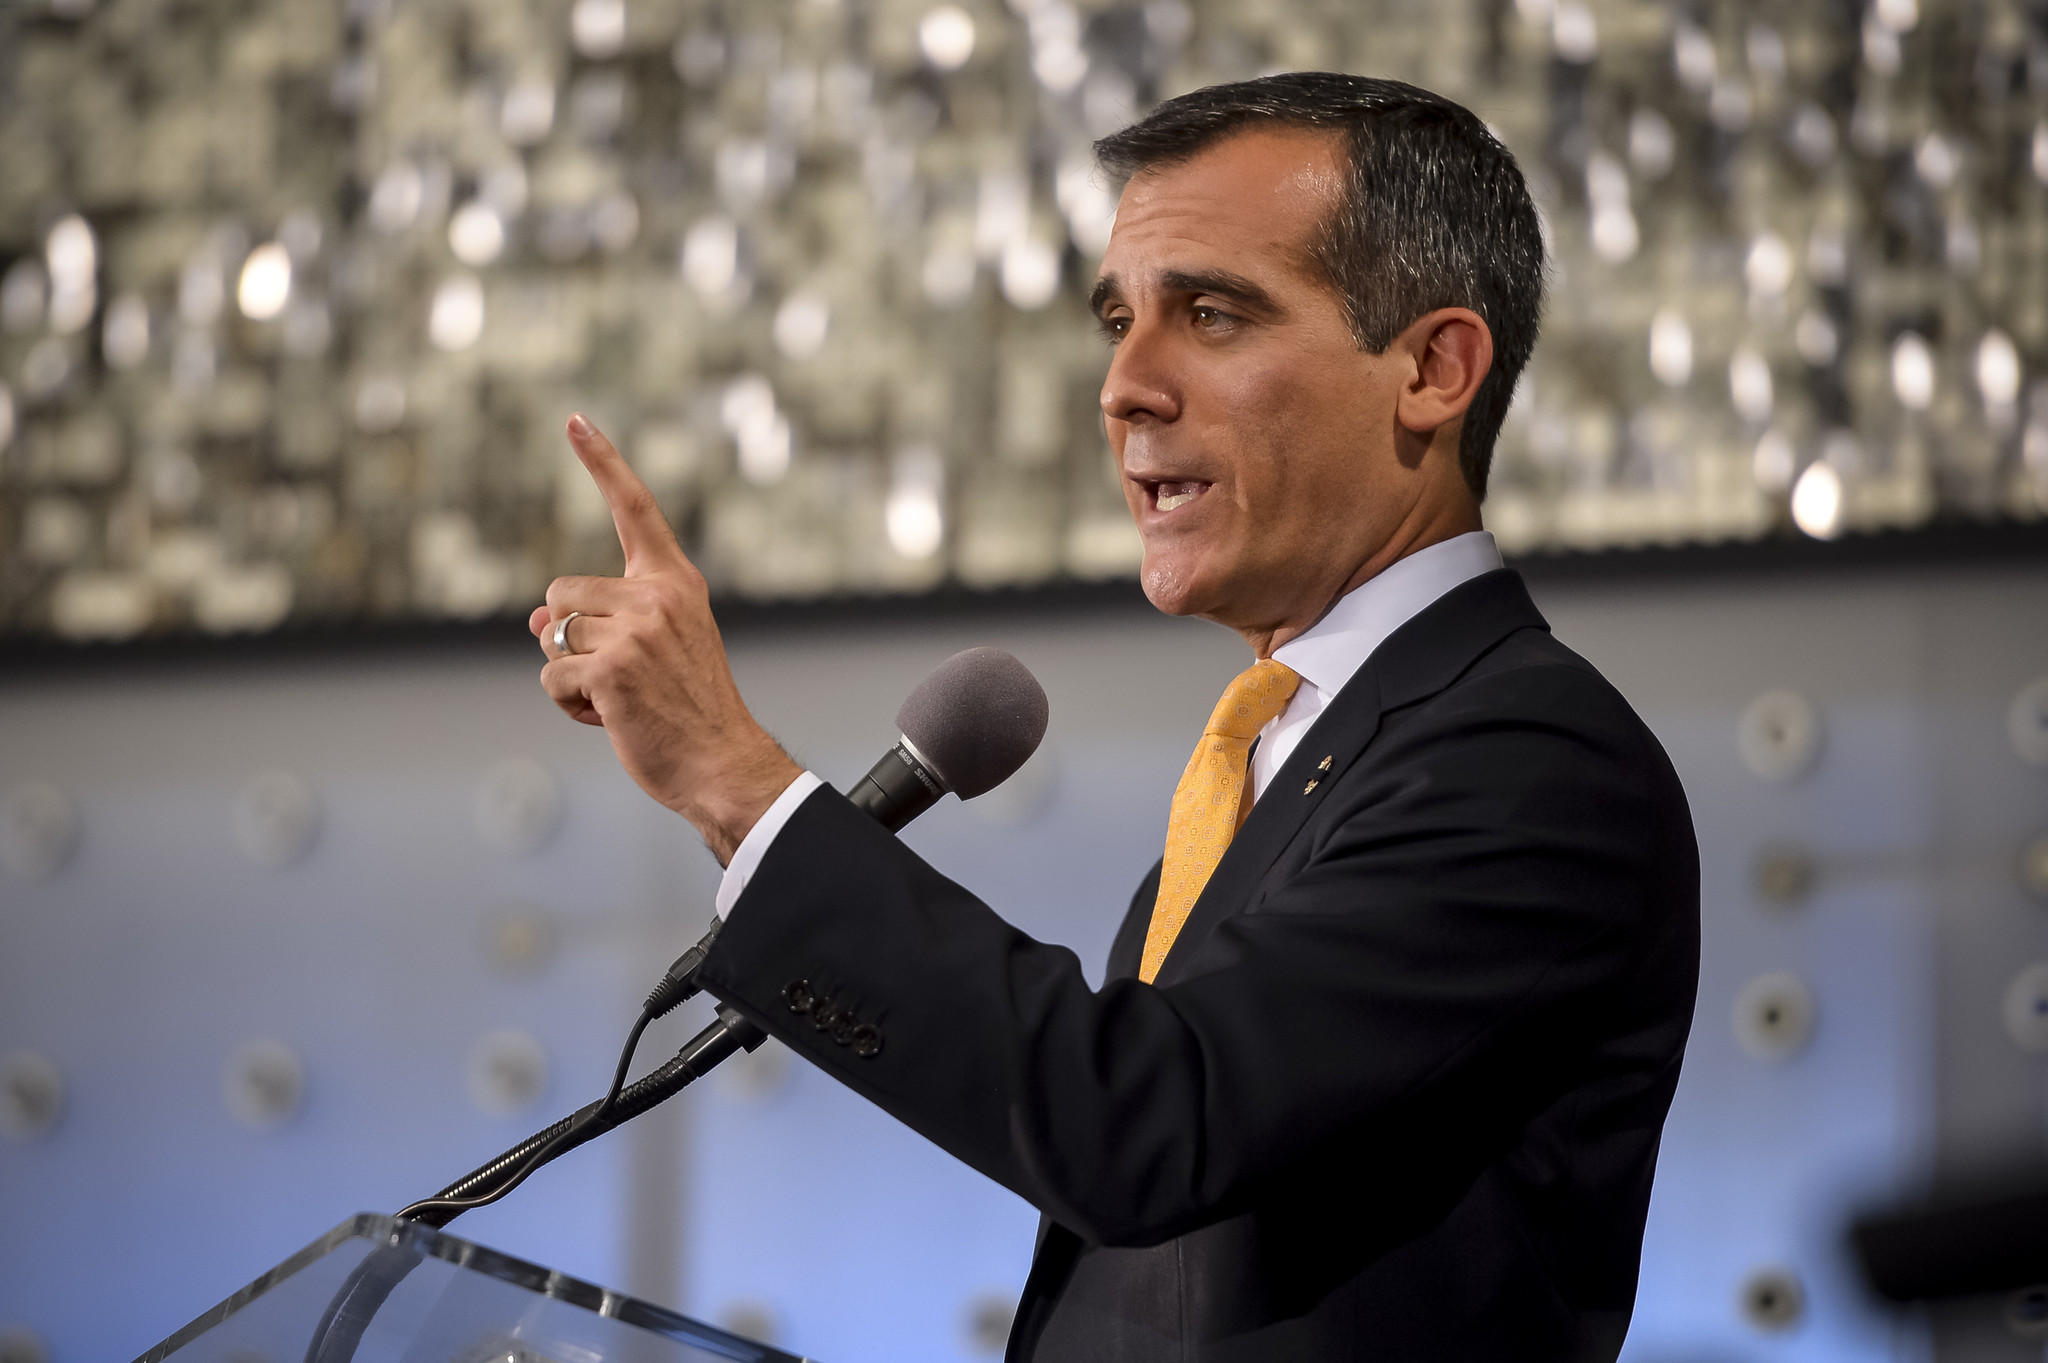 Los Angeles Mayor Eric Garcetti delivers his first State of the City address.